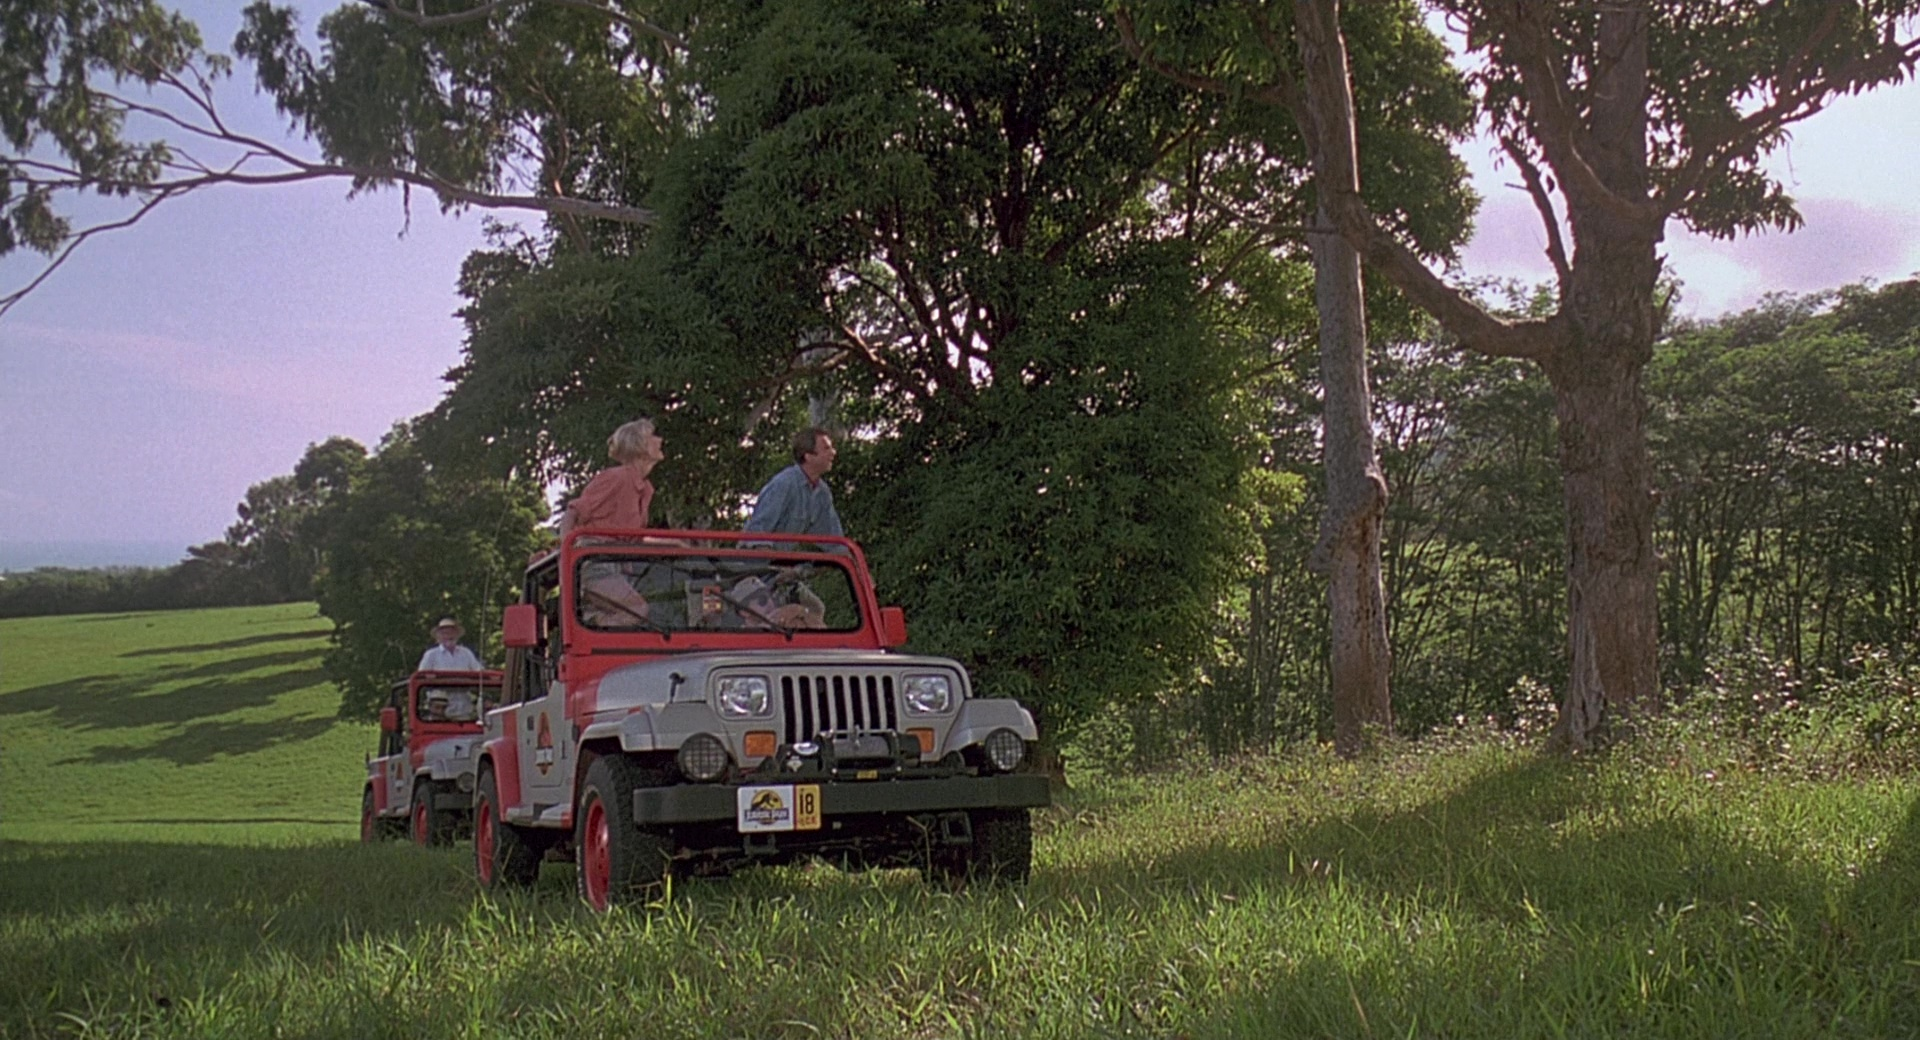 Jeep Wrangler Cars In Jurassic Park